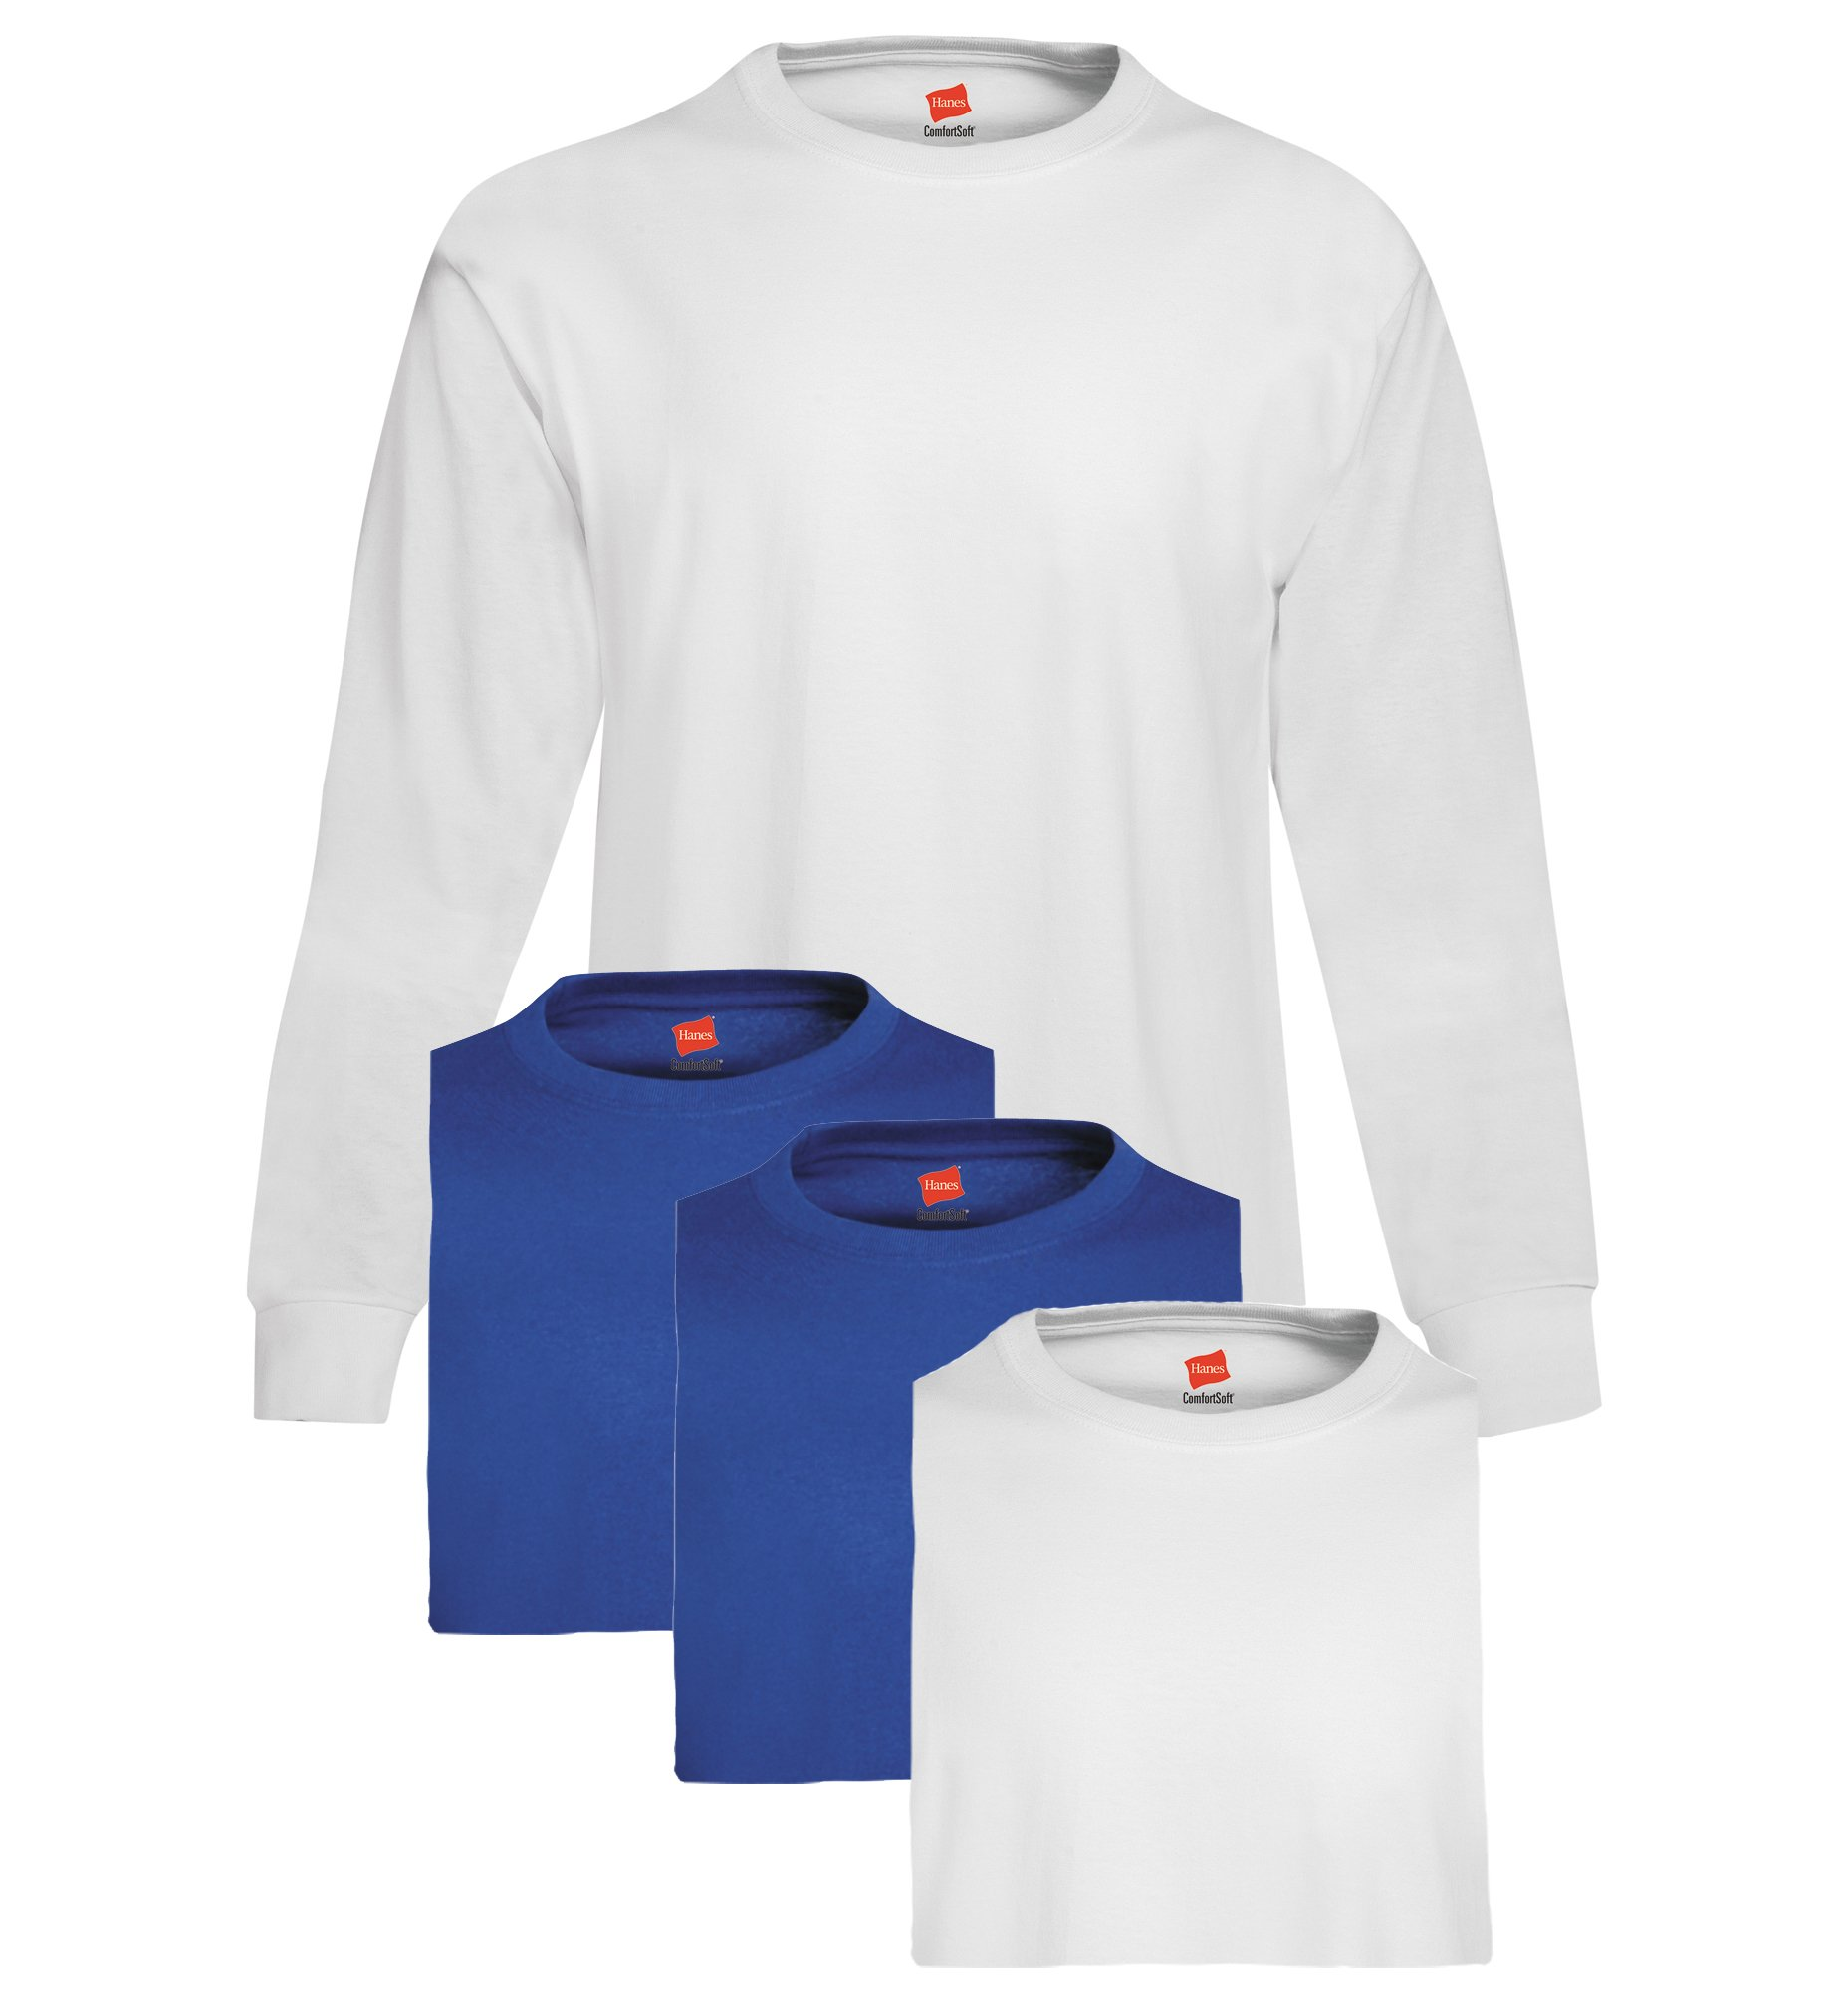 Hanes Men's 4 Pack Long Sleeve T-Shirt, 2 White/2 Royal